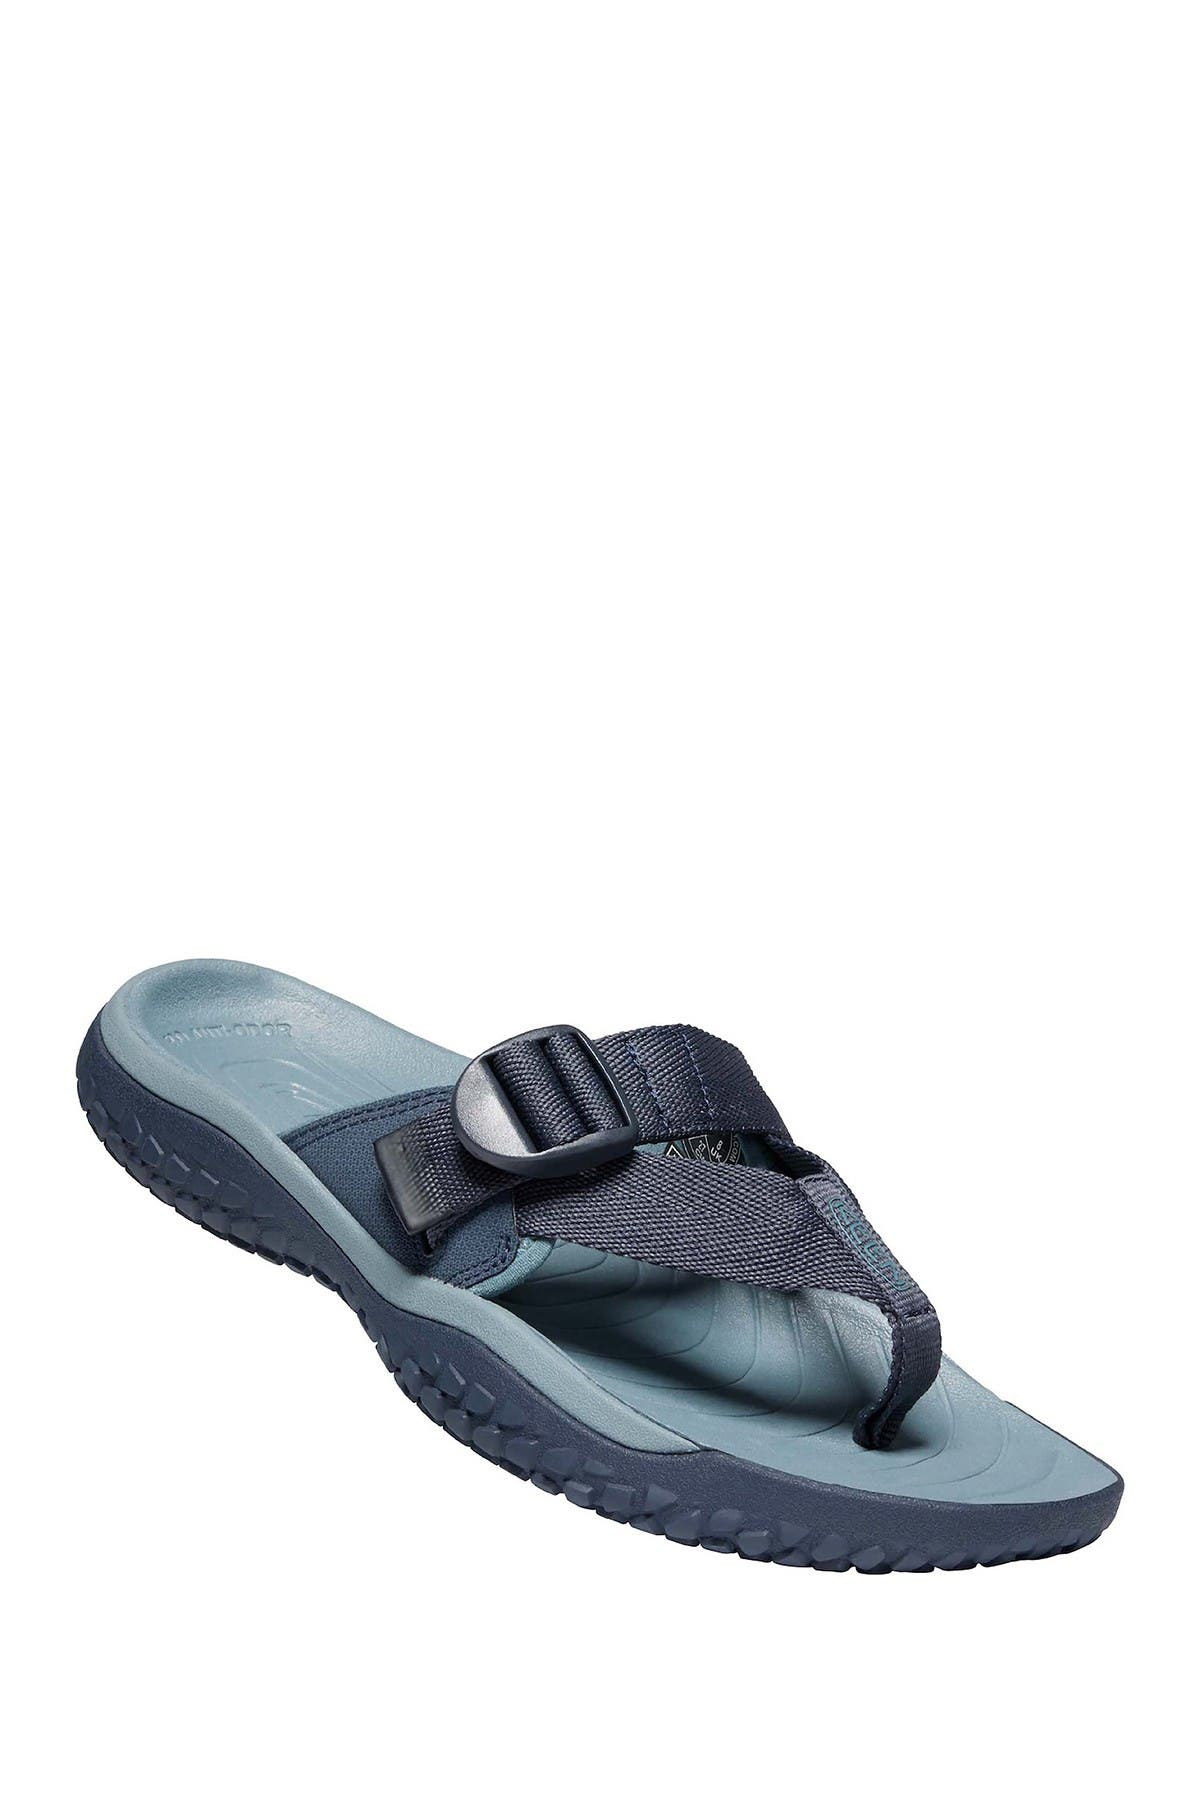 Image of Keen SOLR Toe Post Sandal